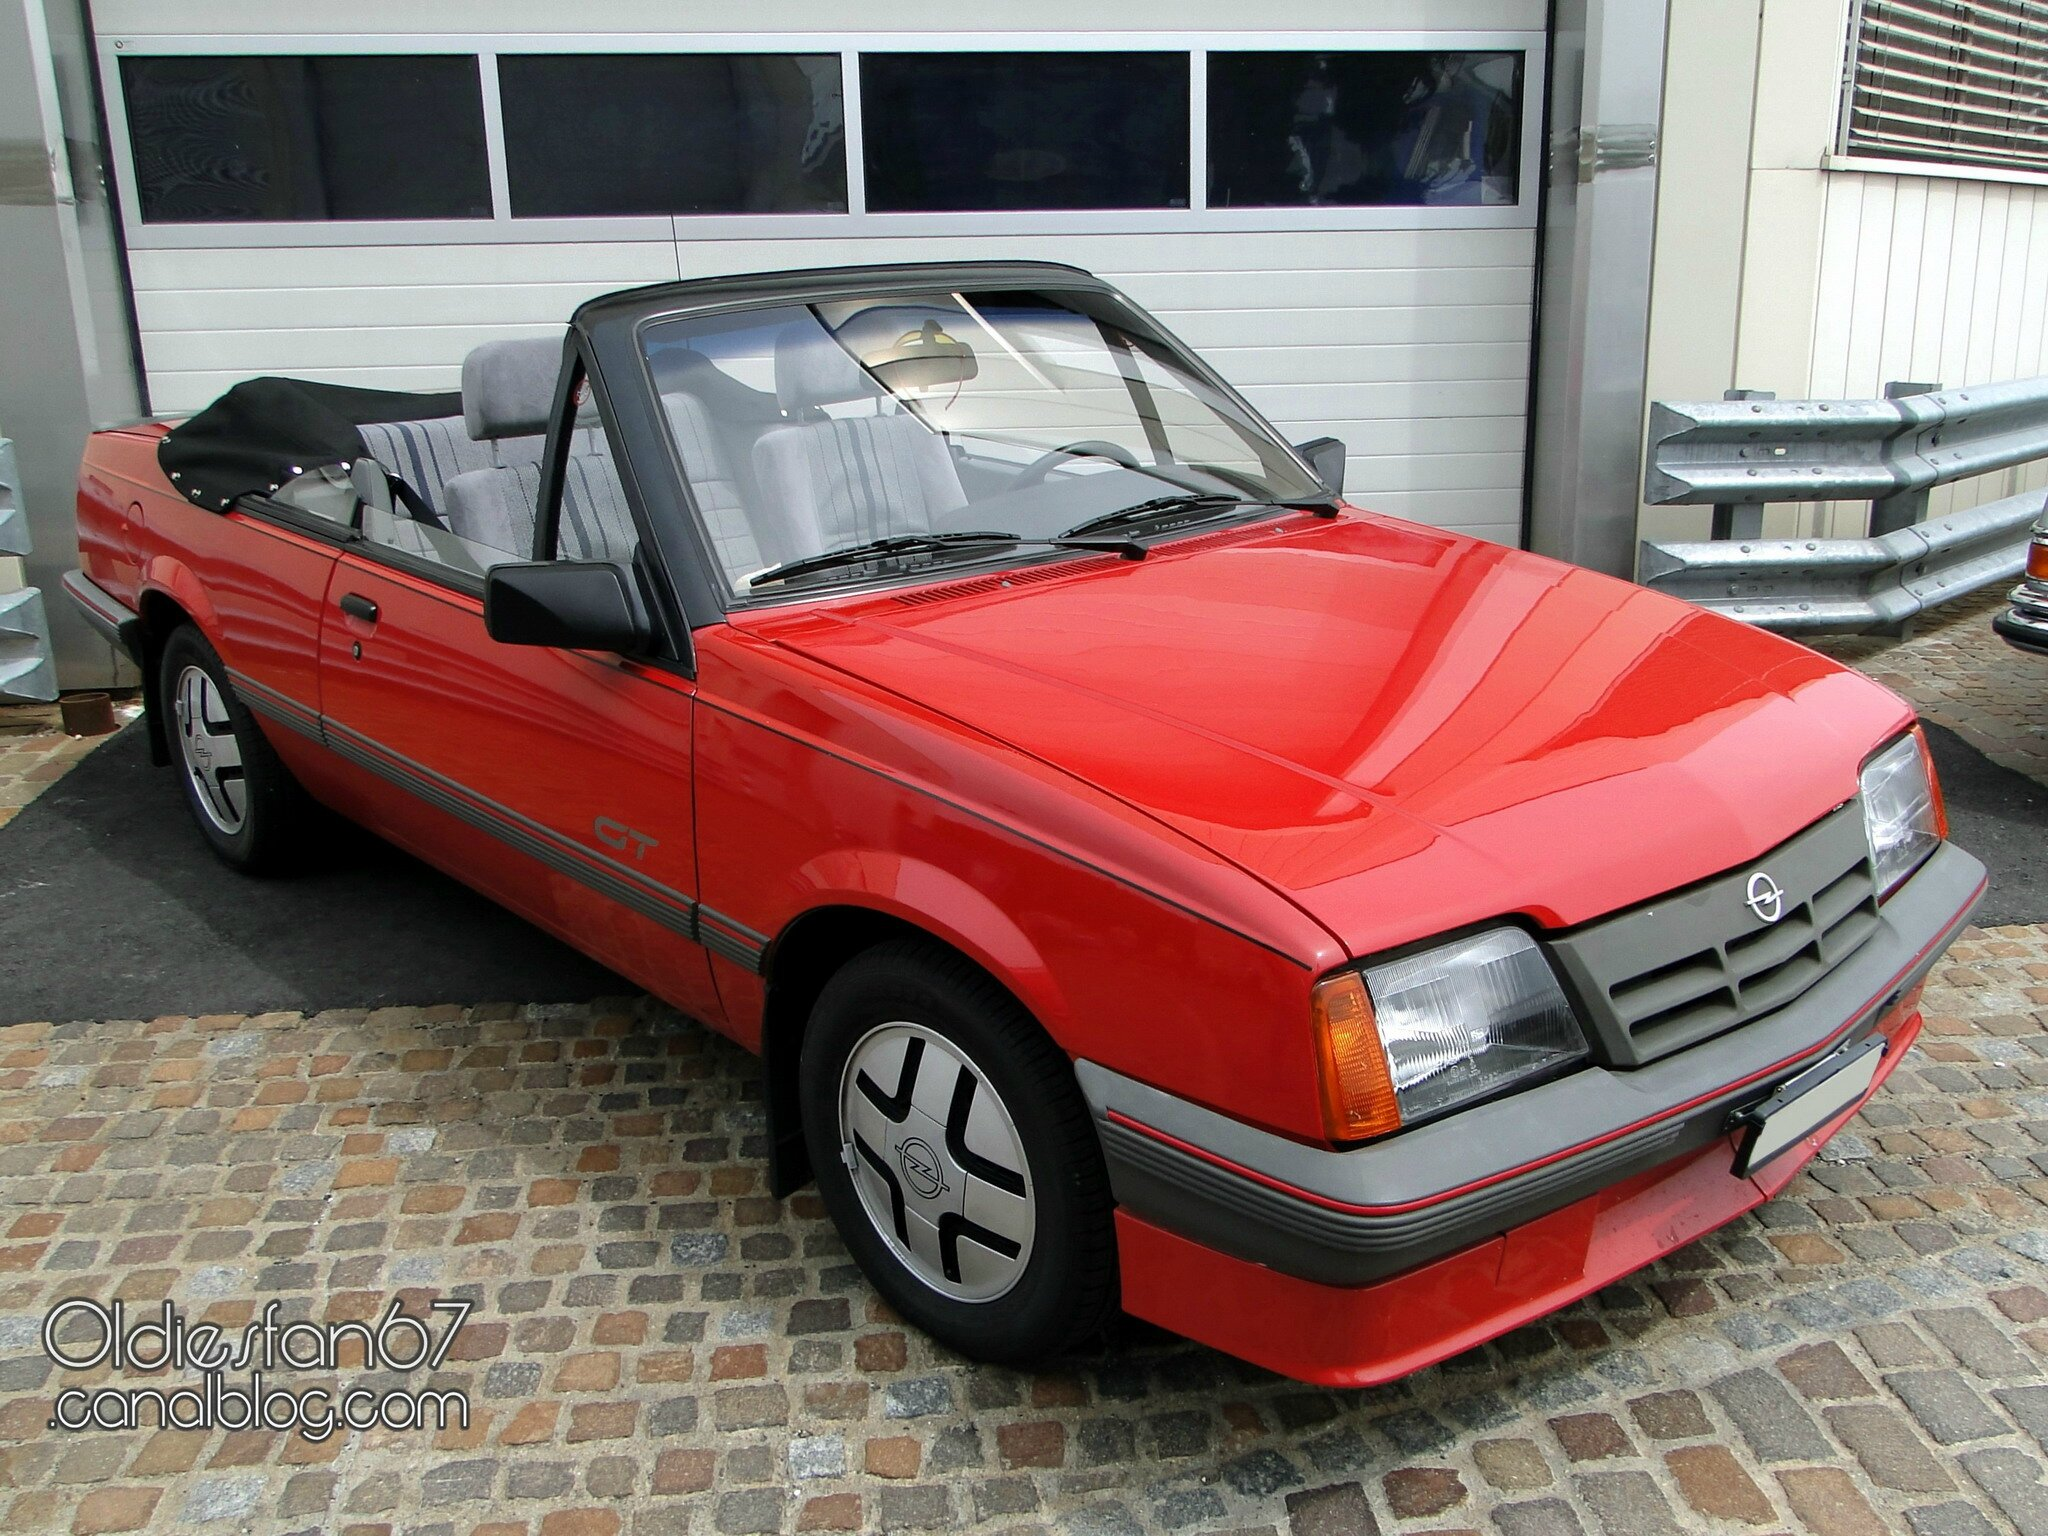 opel ascona c cabriolet by voll 1986 oldiesfan67 mon blog auto. Black Bedroom Furniture Sets. Home Design Ideas